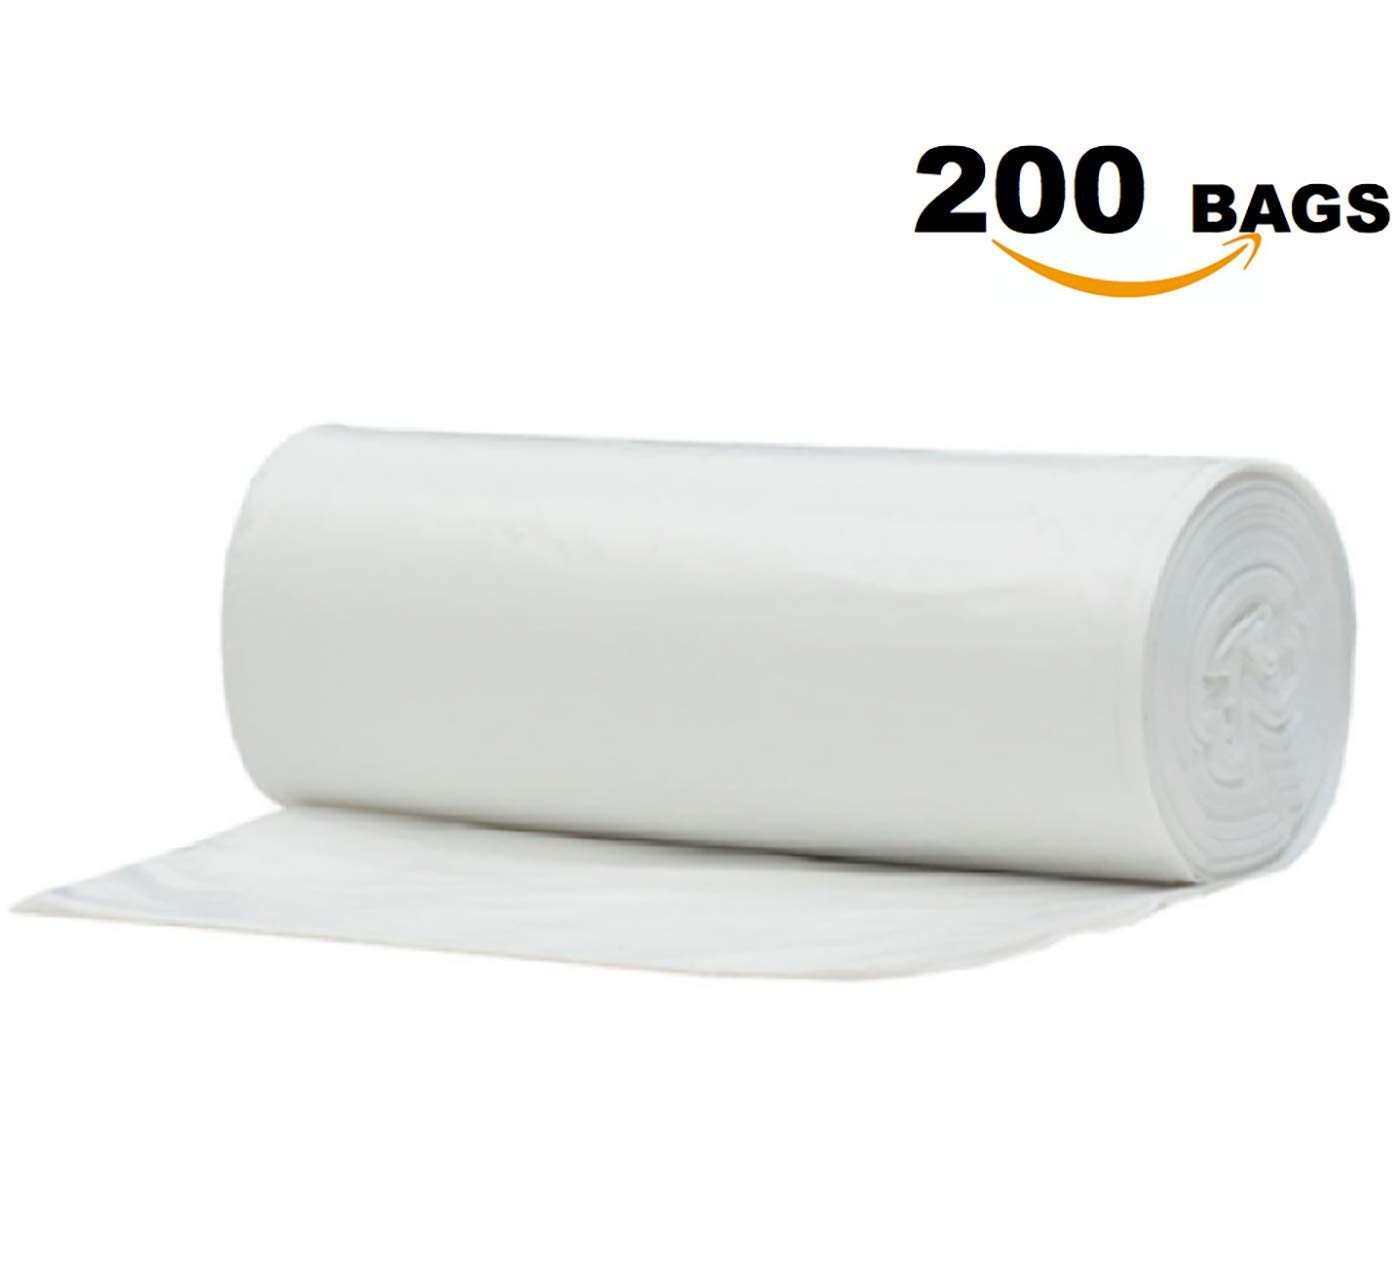 8 Gallon Clear Garbage Trash Bags, 200 Count